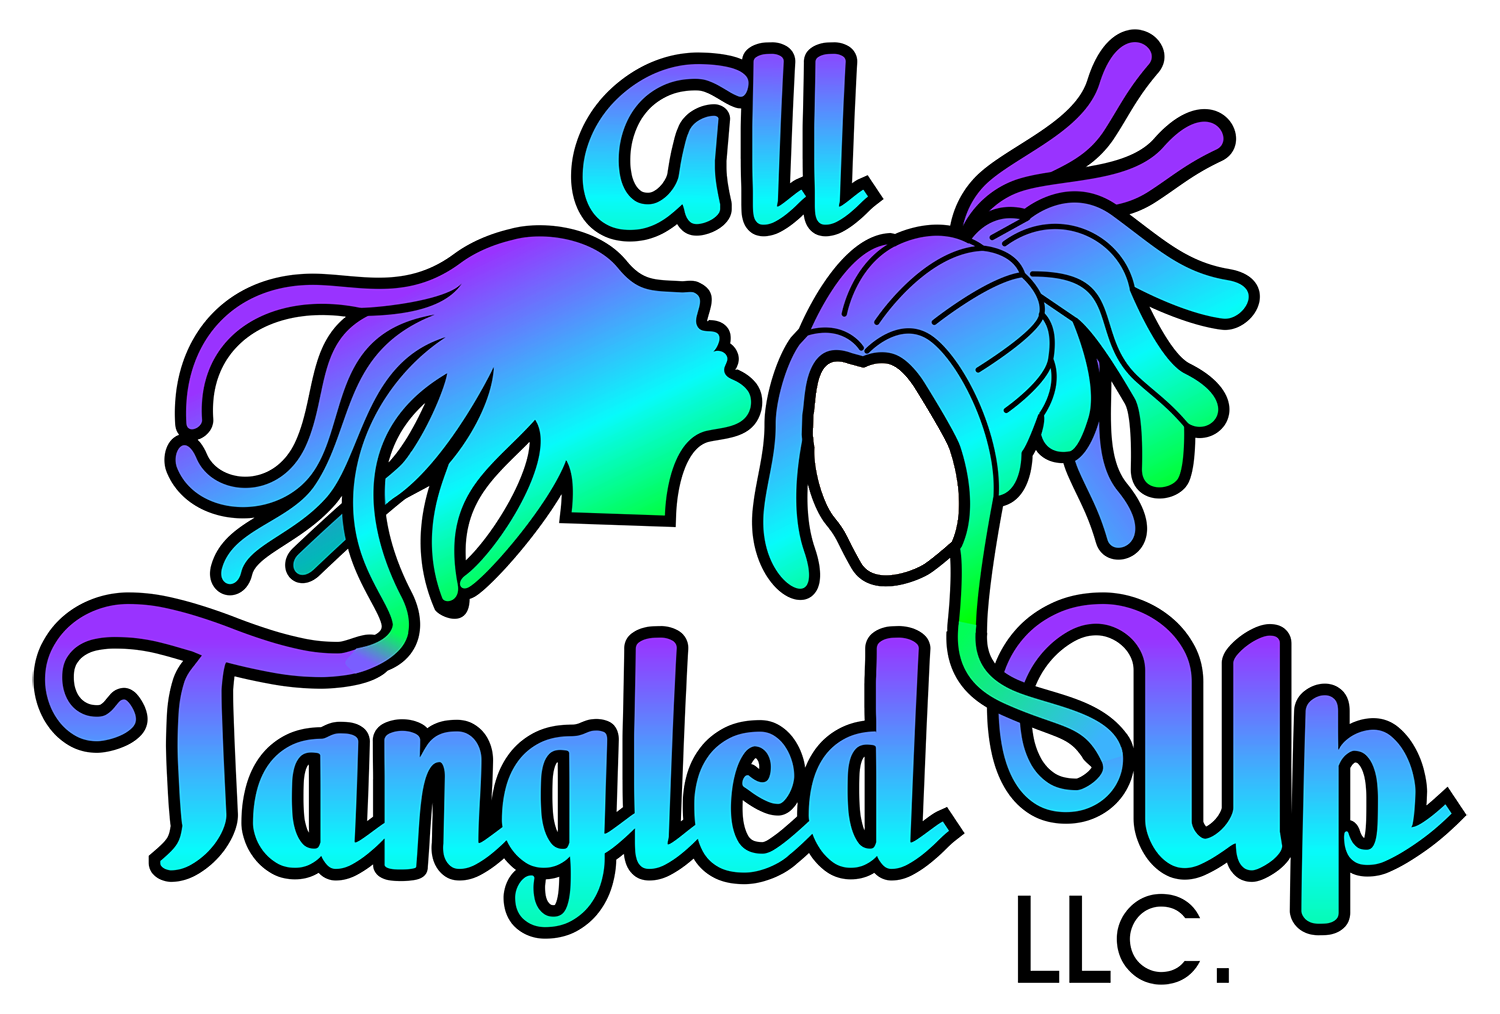 All Tangled Up, LLC.